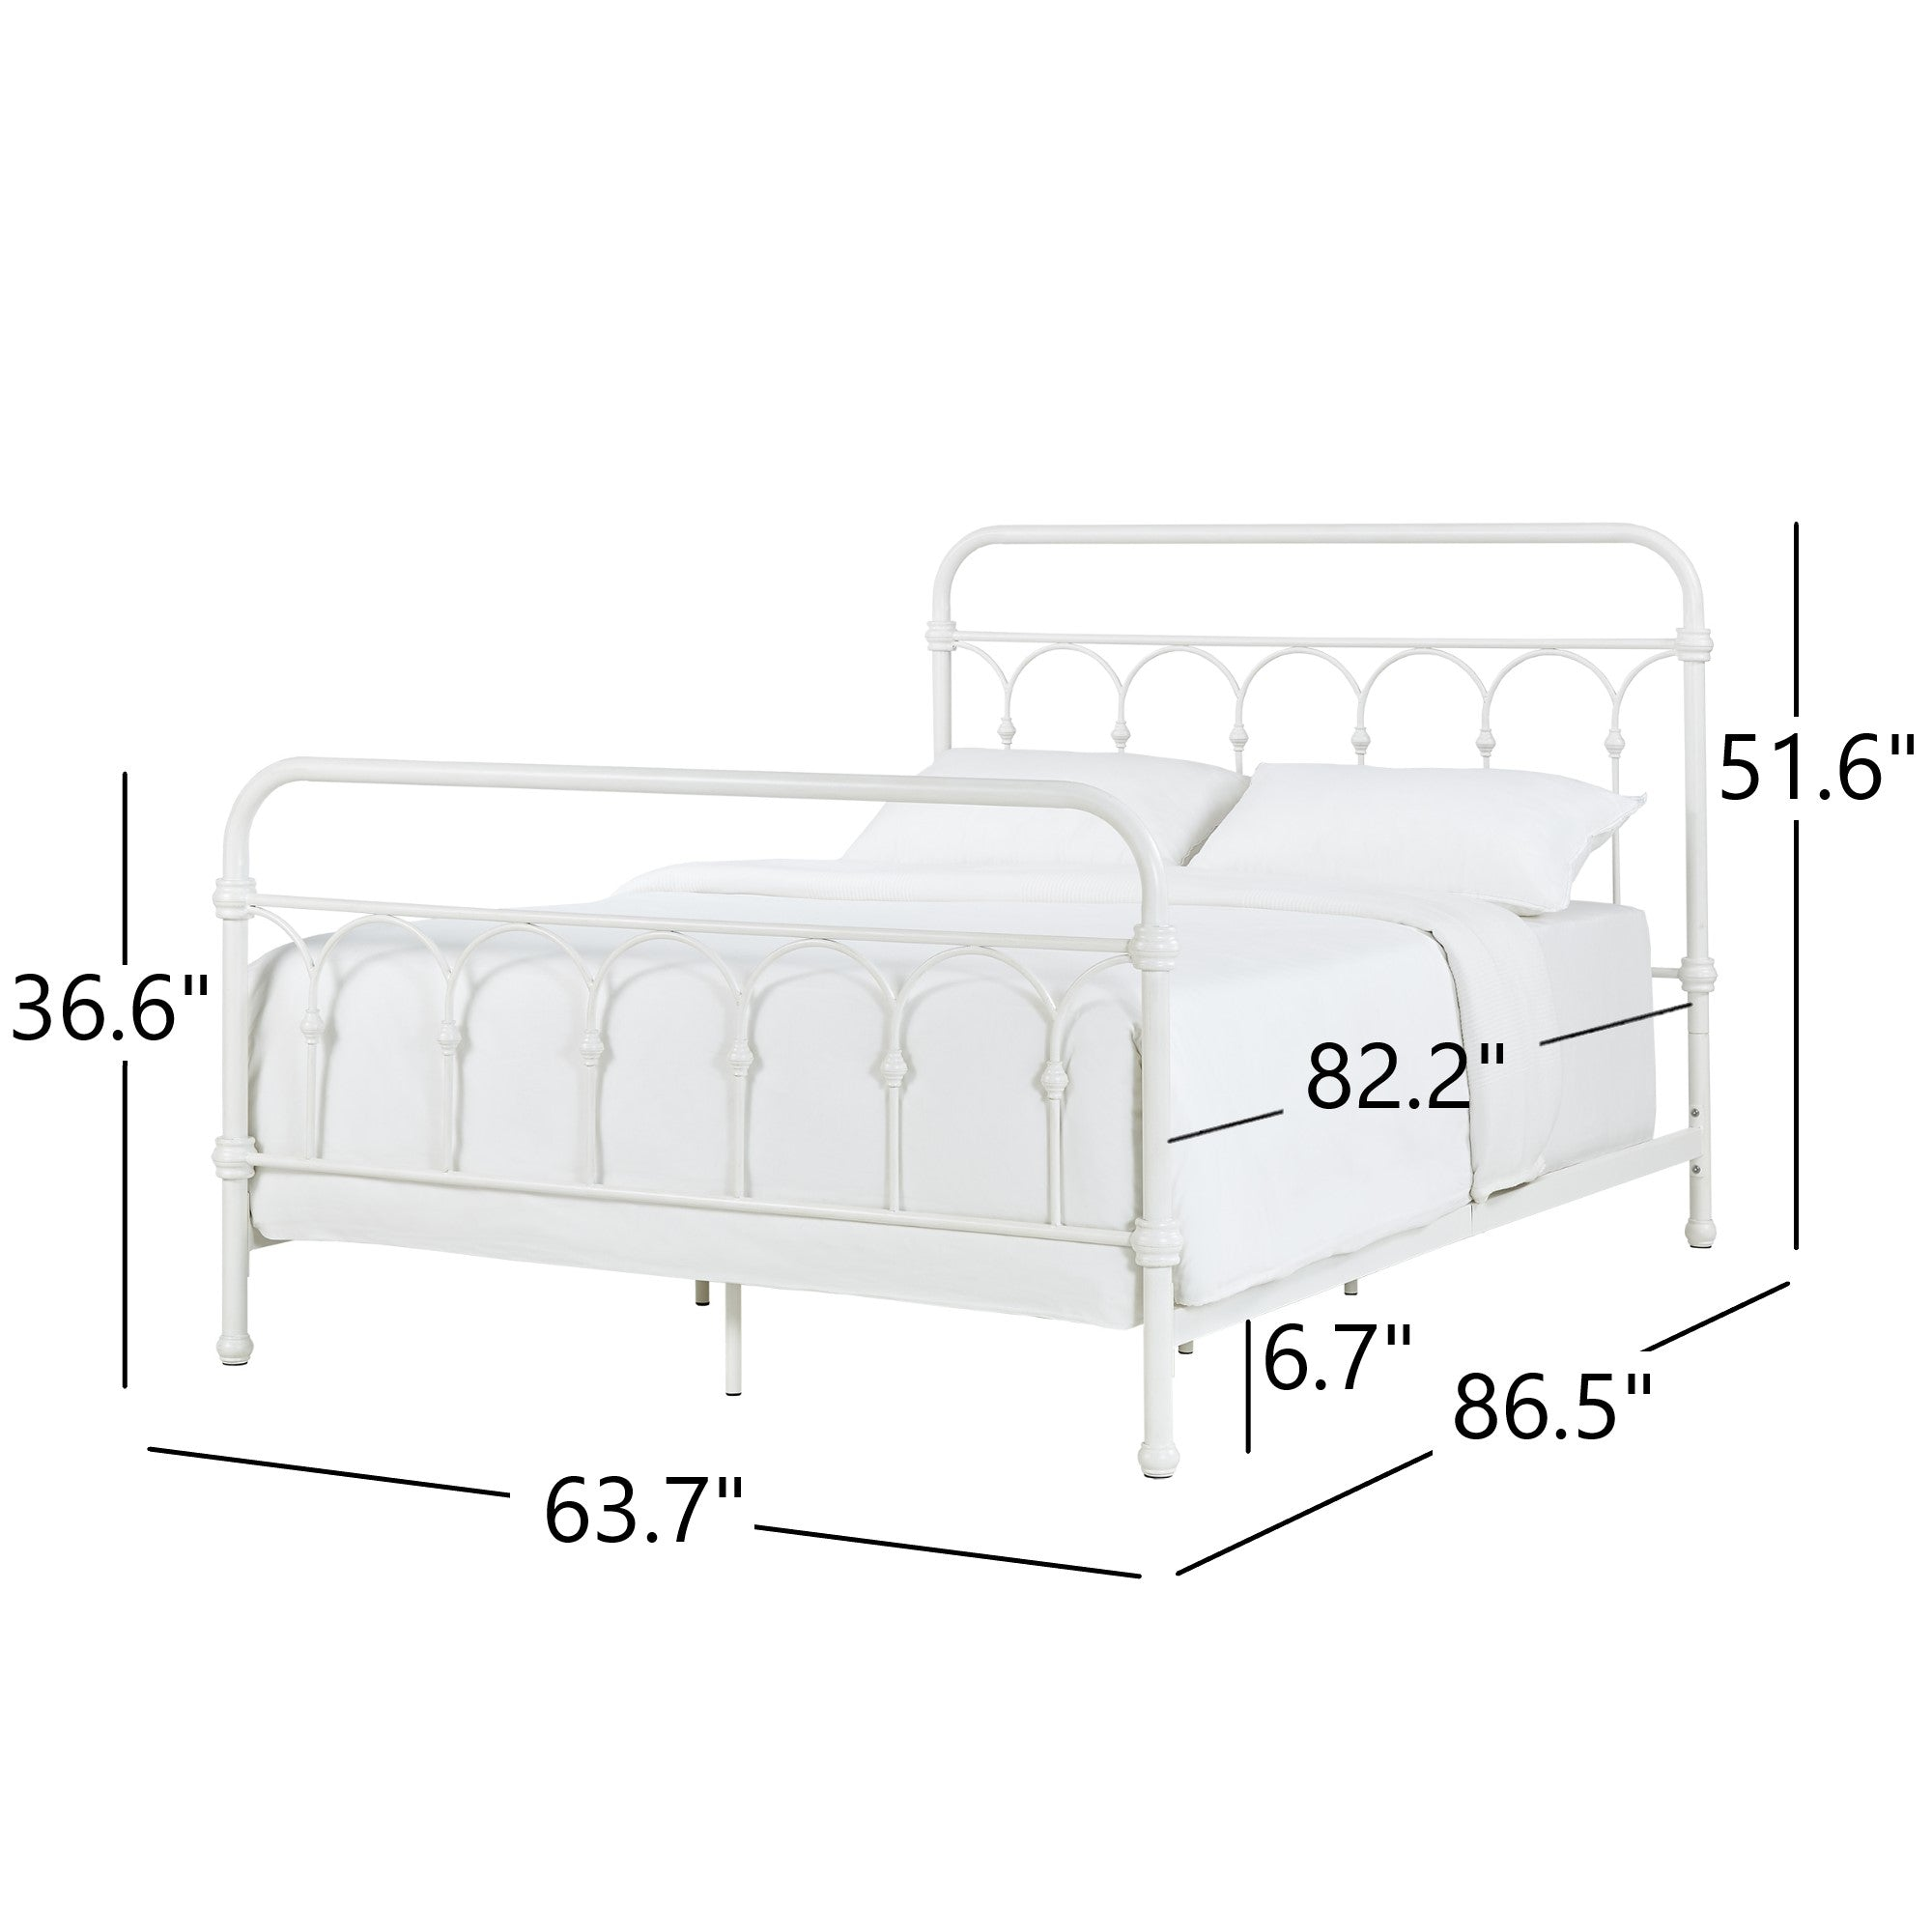 Casted Knot Metal Bed - Antique White - Queen (Queen Size)